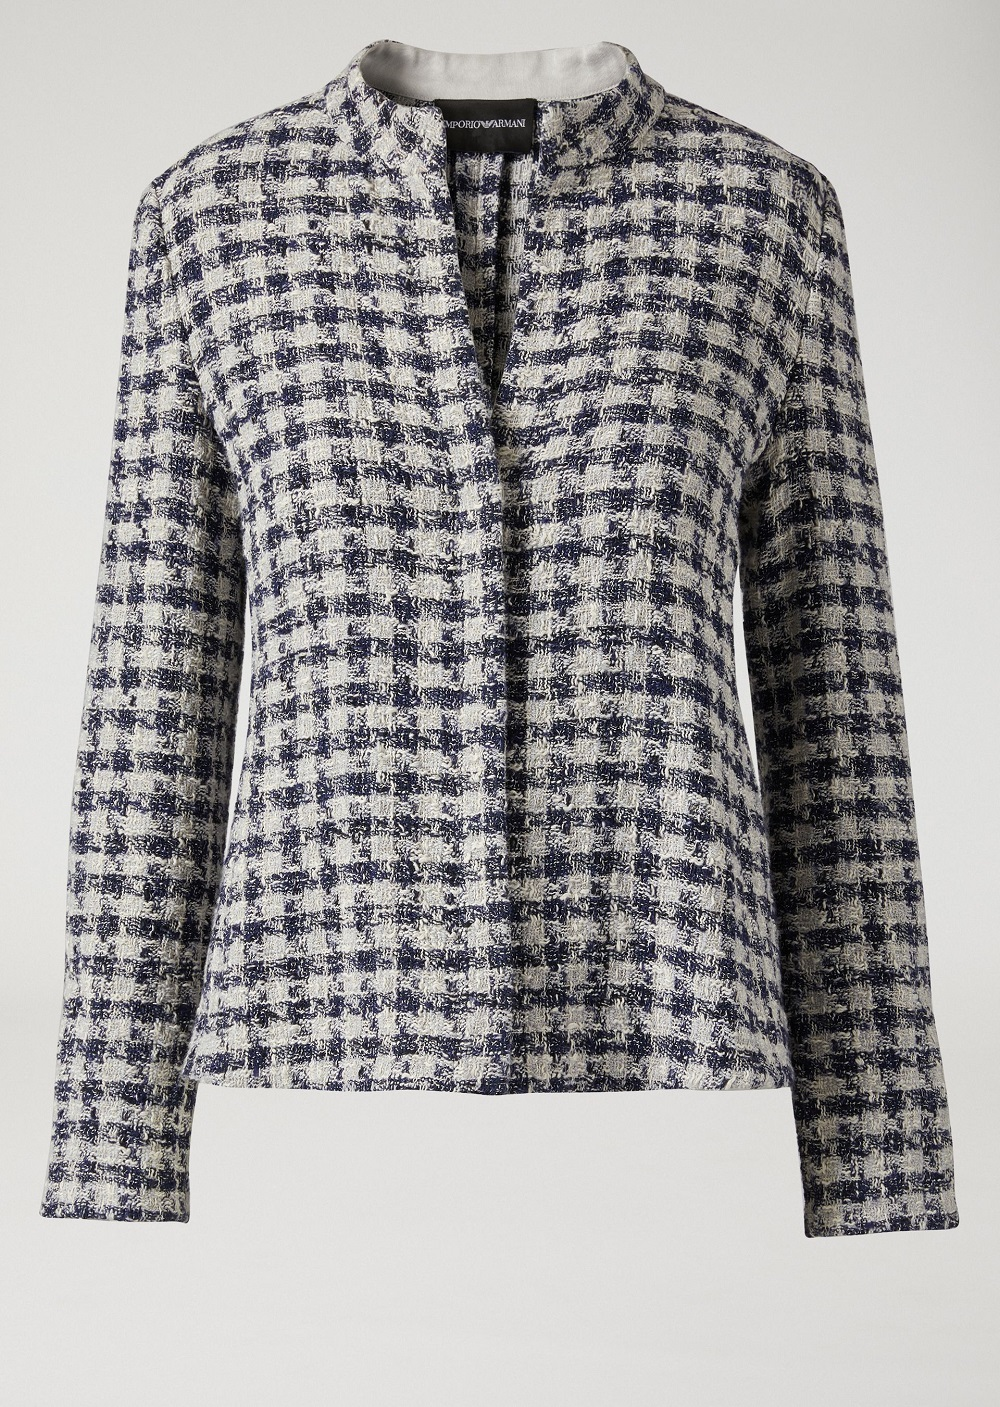 Single-breasted jacket in houndstooth-rsz